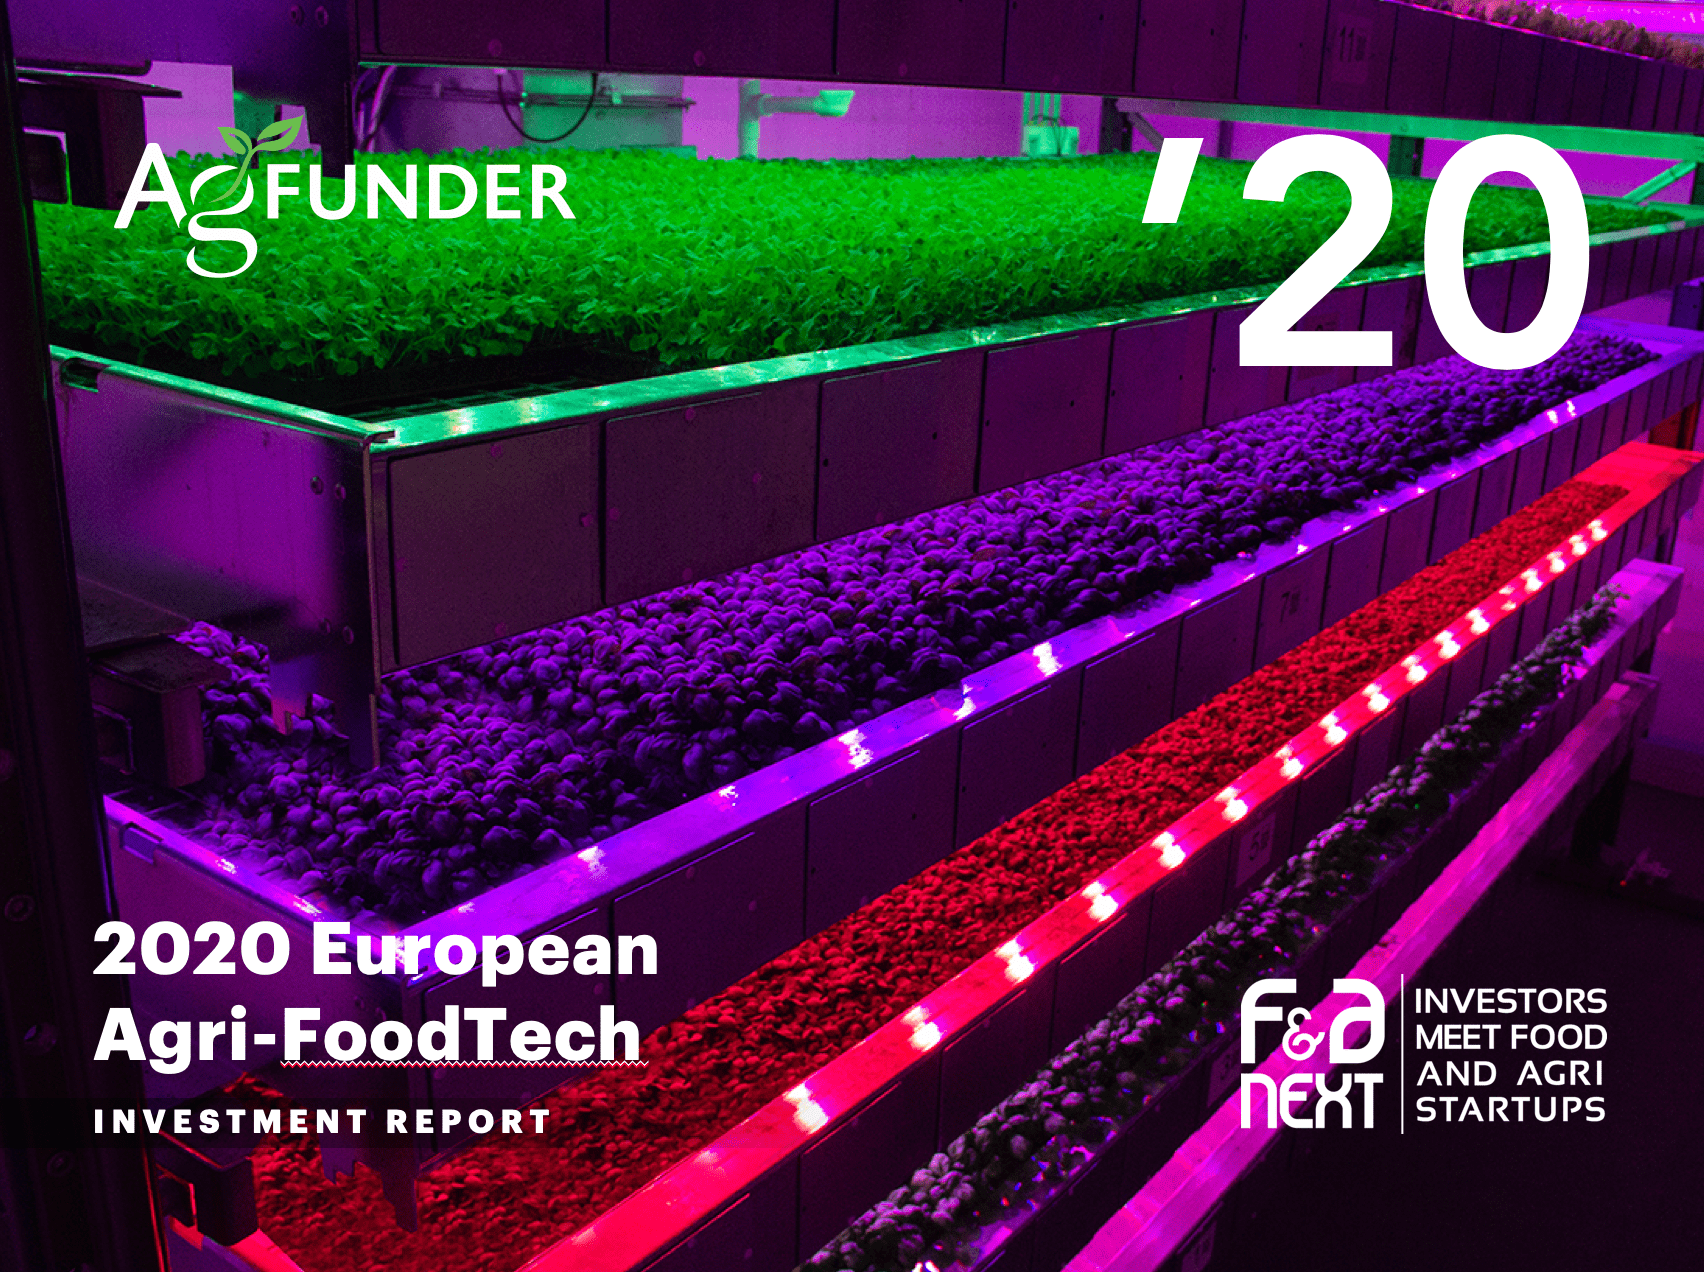 2020 European Agri-FoodTech Investment Report